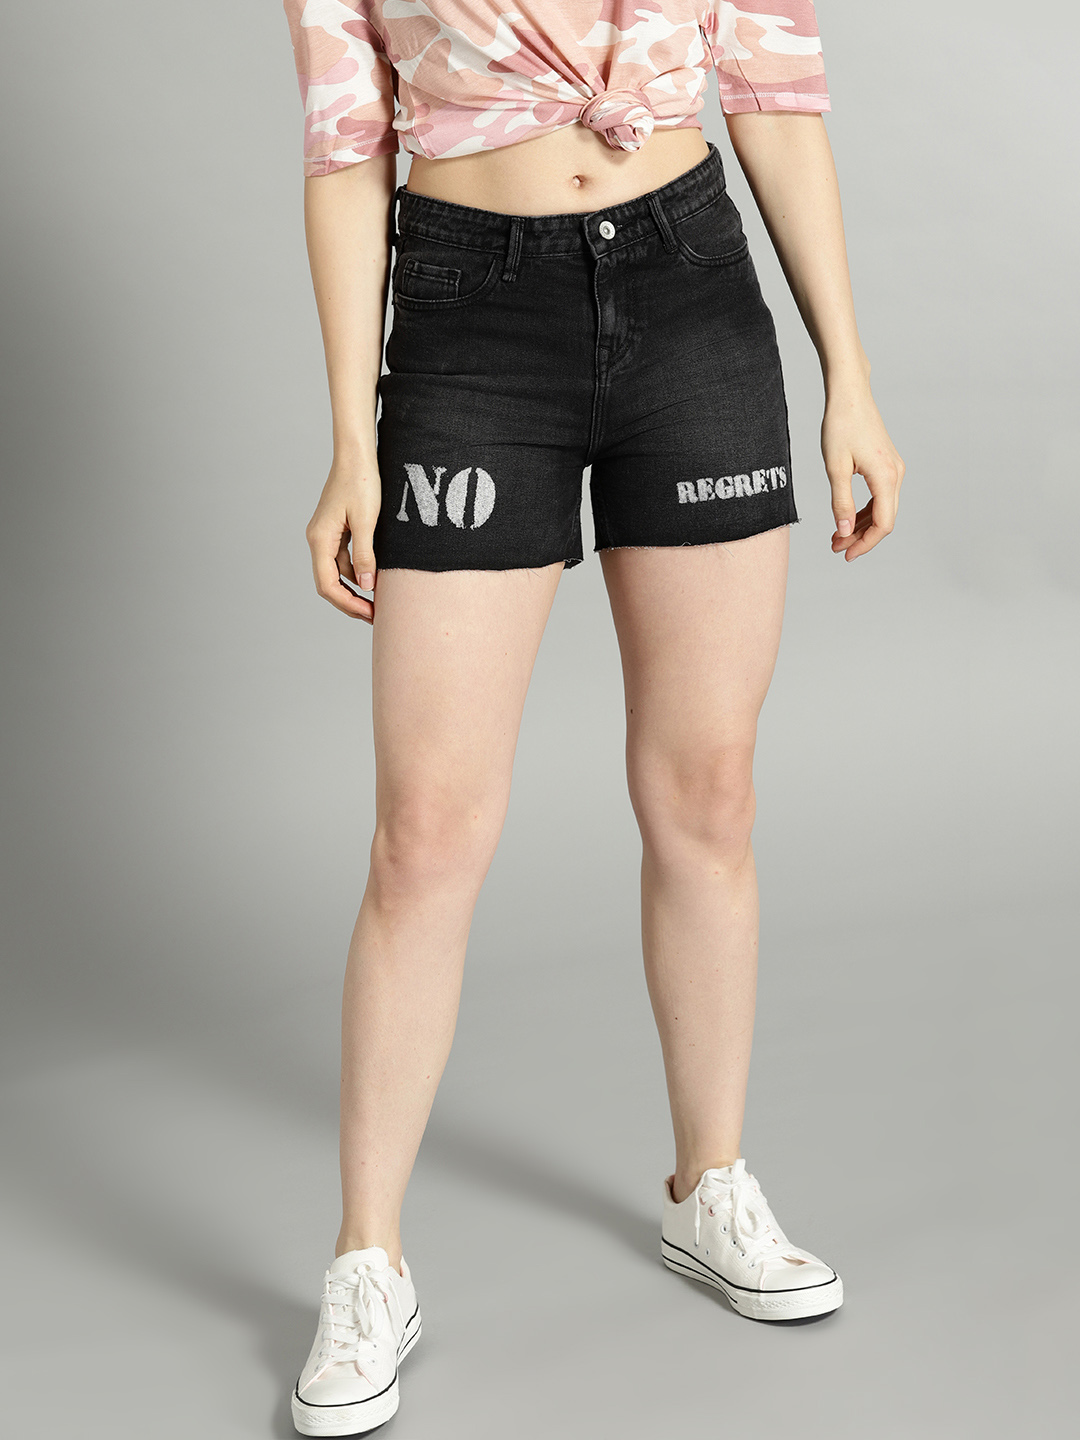 Roadster Time Travlr Women Black Washed Regular Fit Denim Shorts Price in India